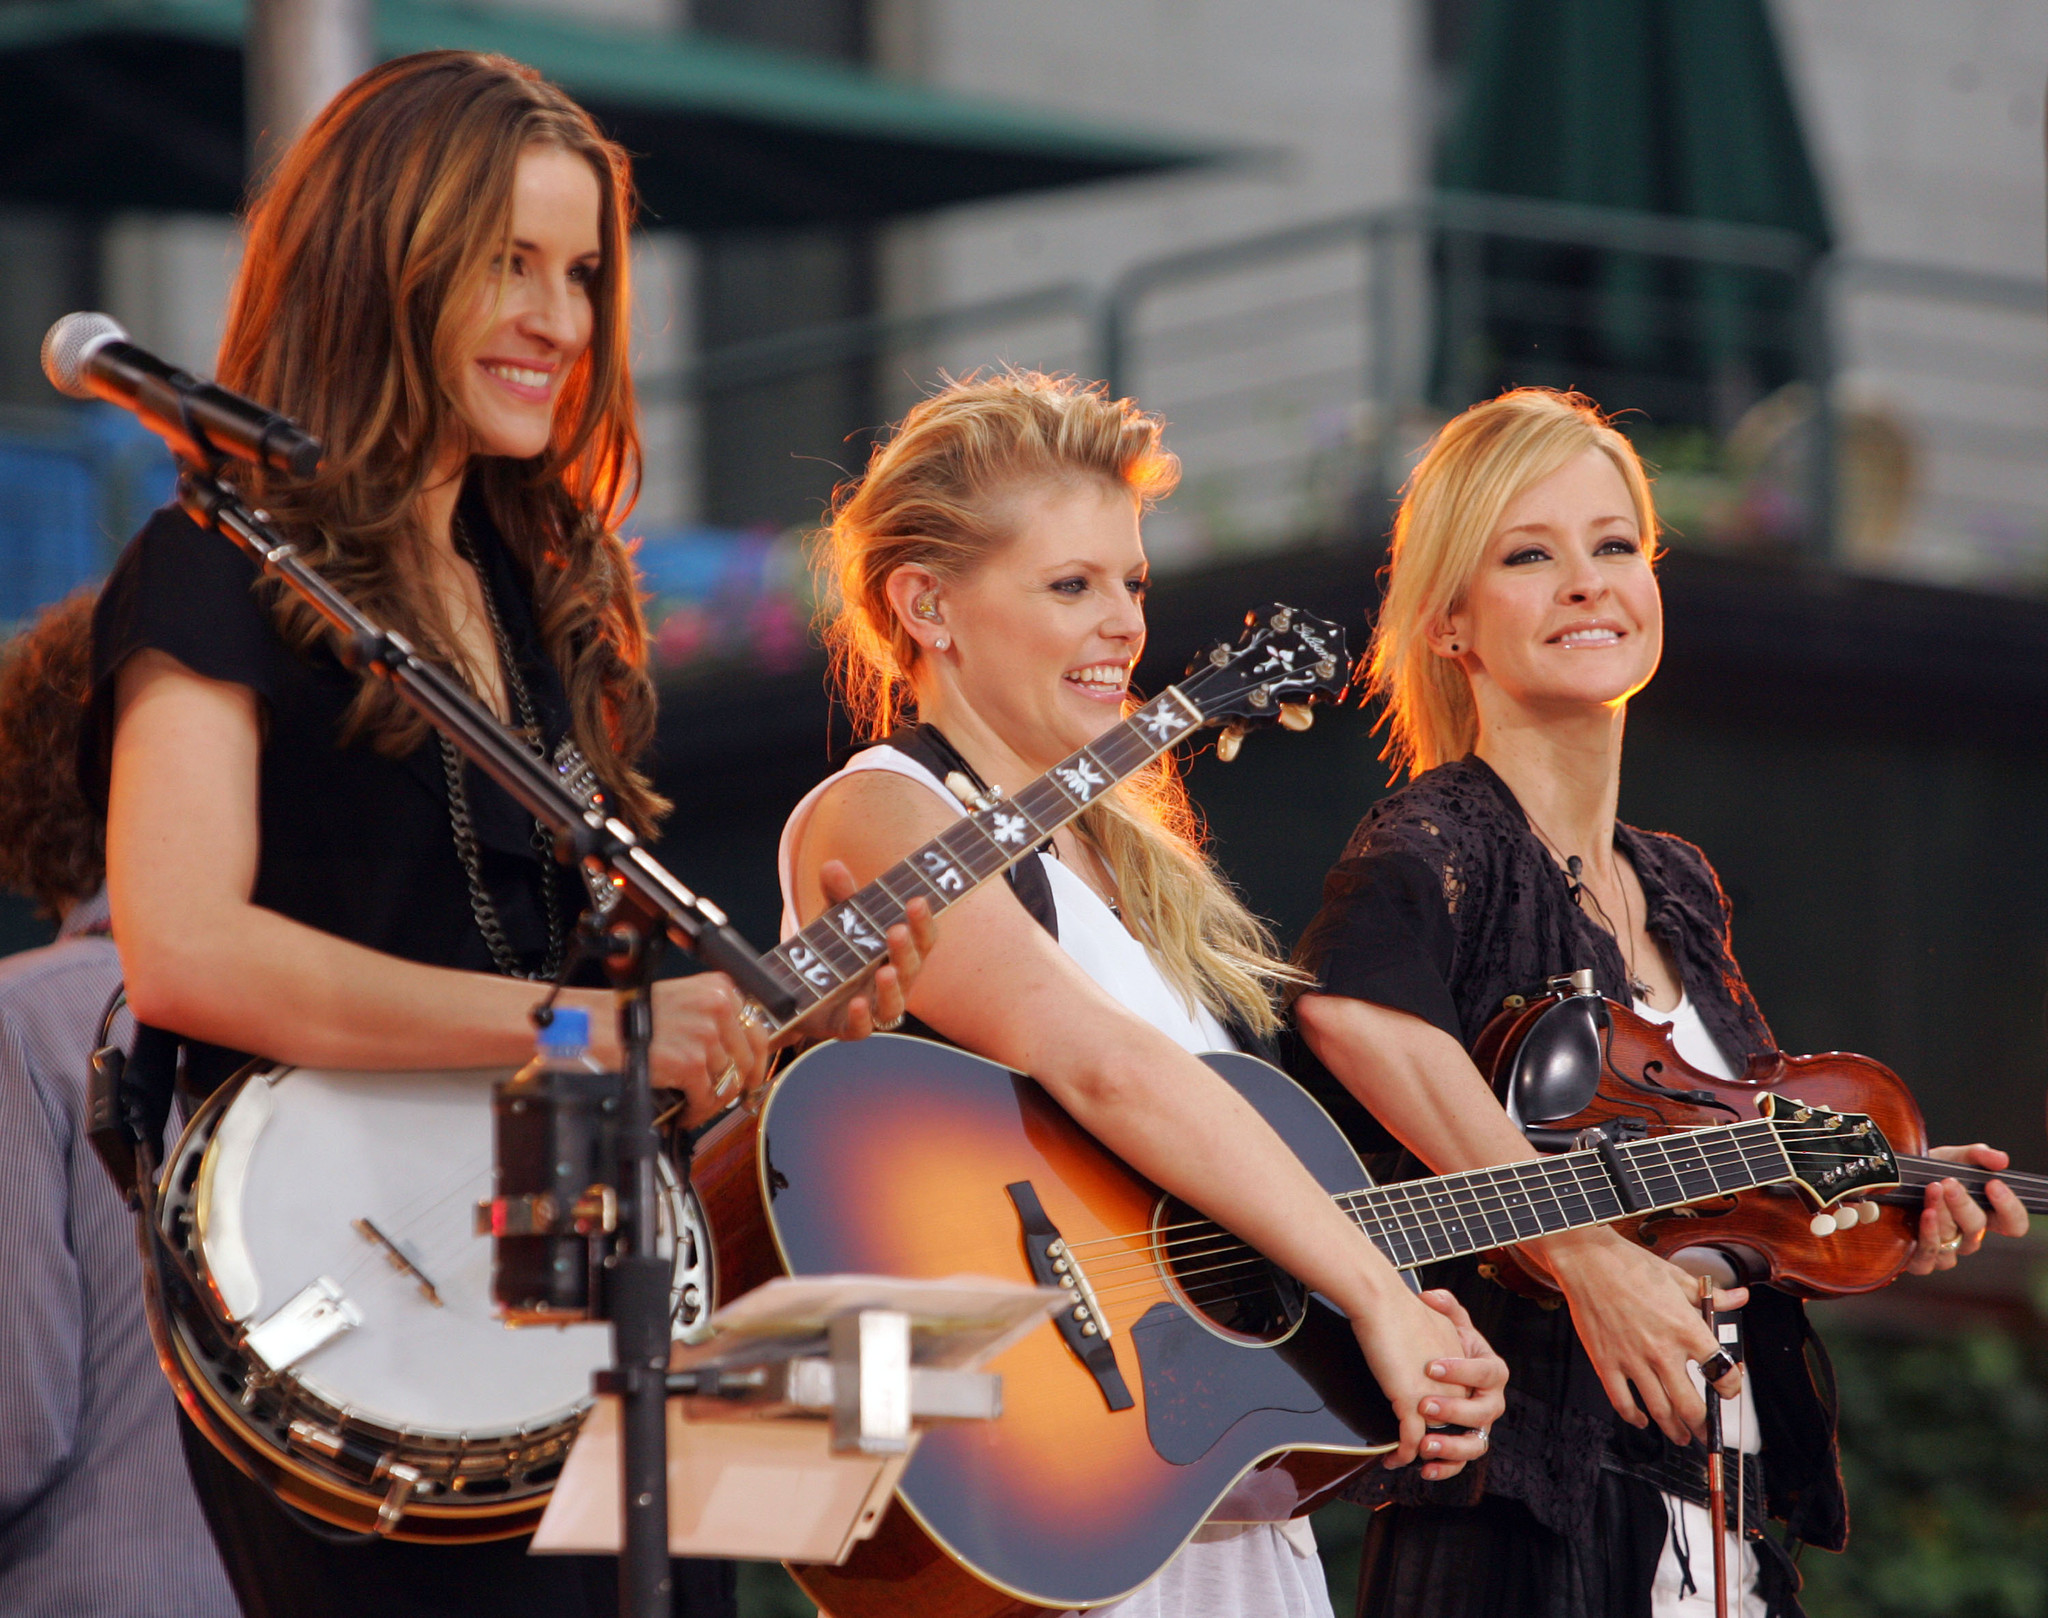 Dixie Chicks Announce 2016 Tour With Stop In Virginia